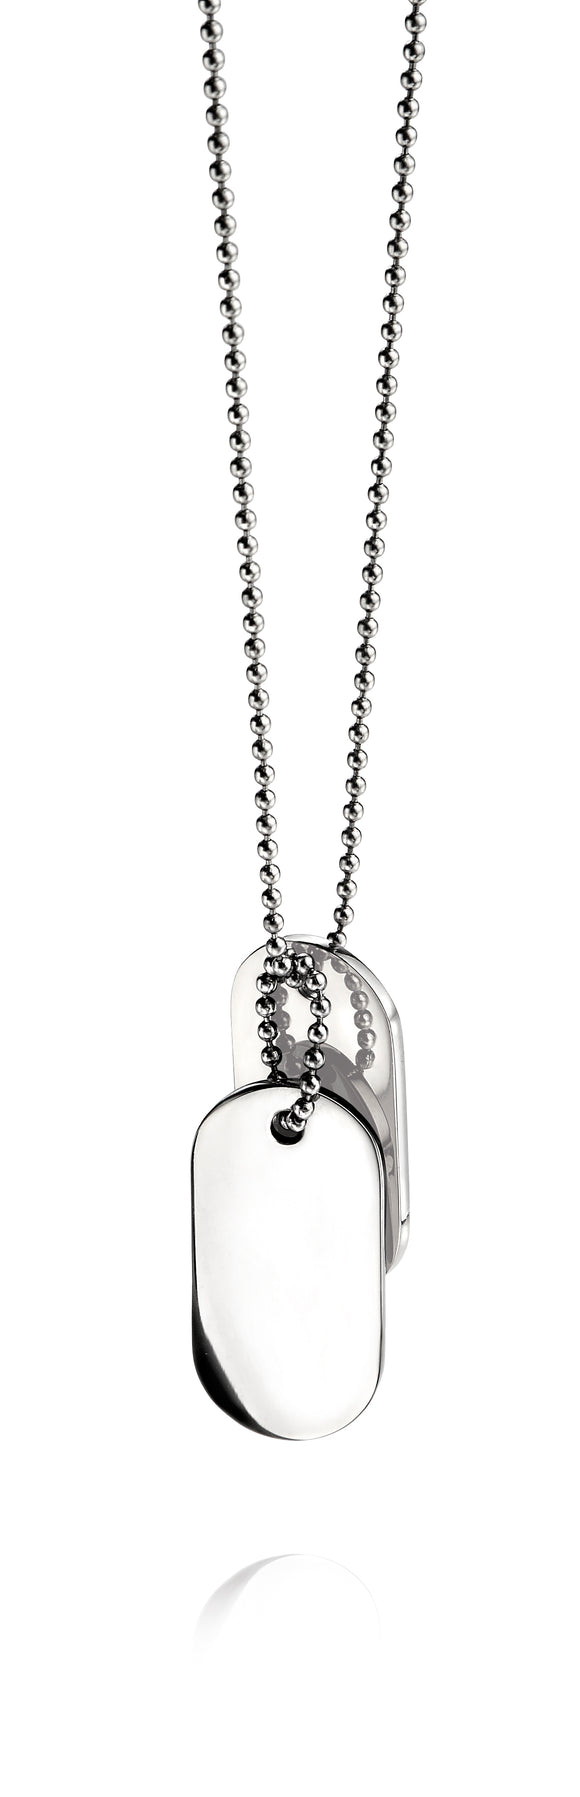 FRED BENNETT DOG TAG NECKLACE